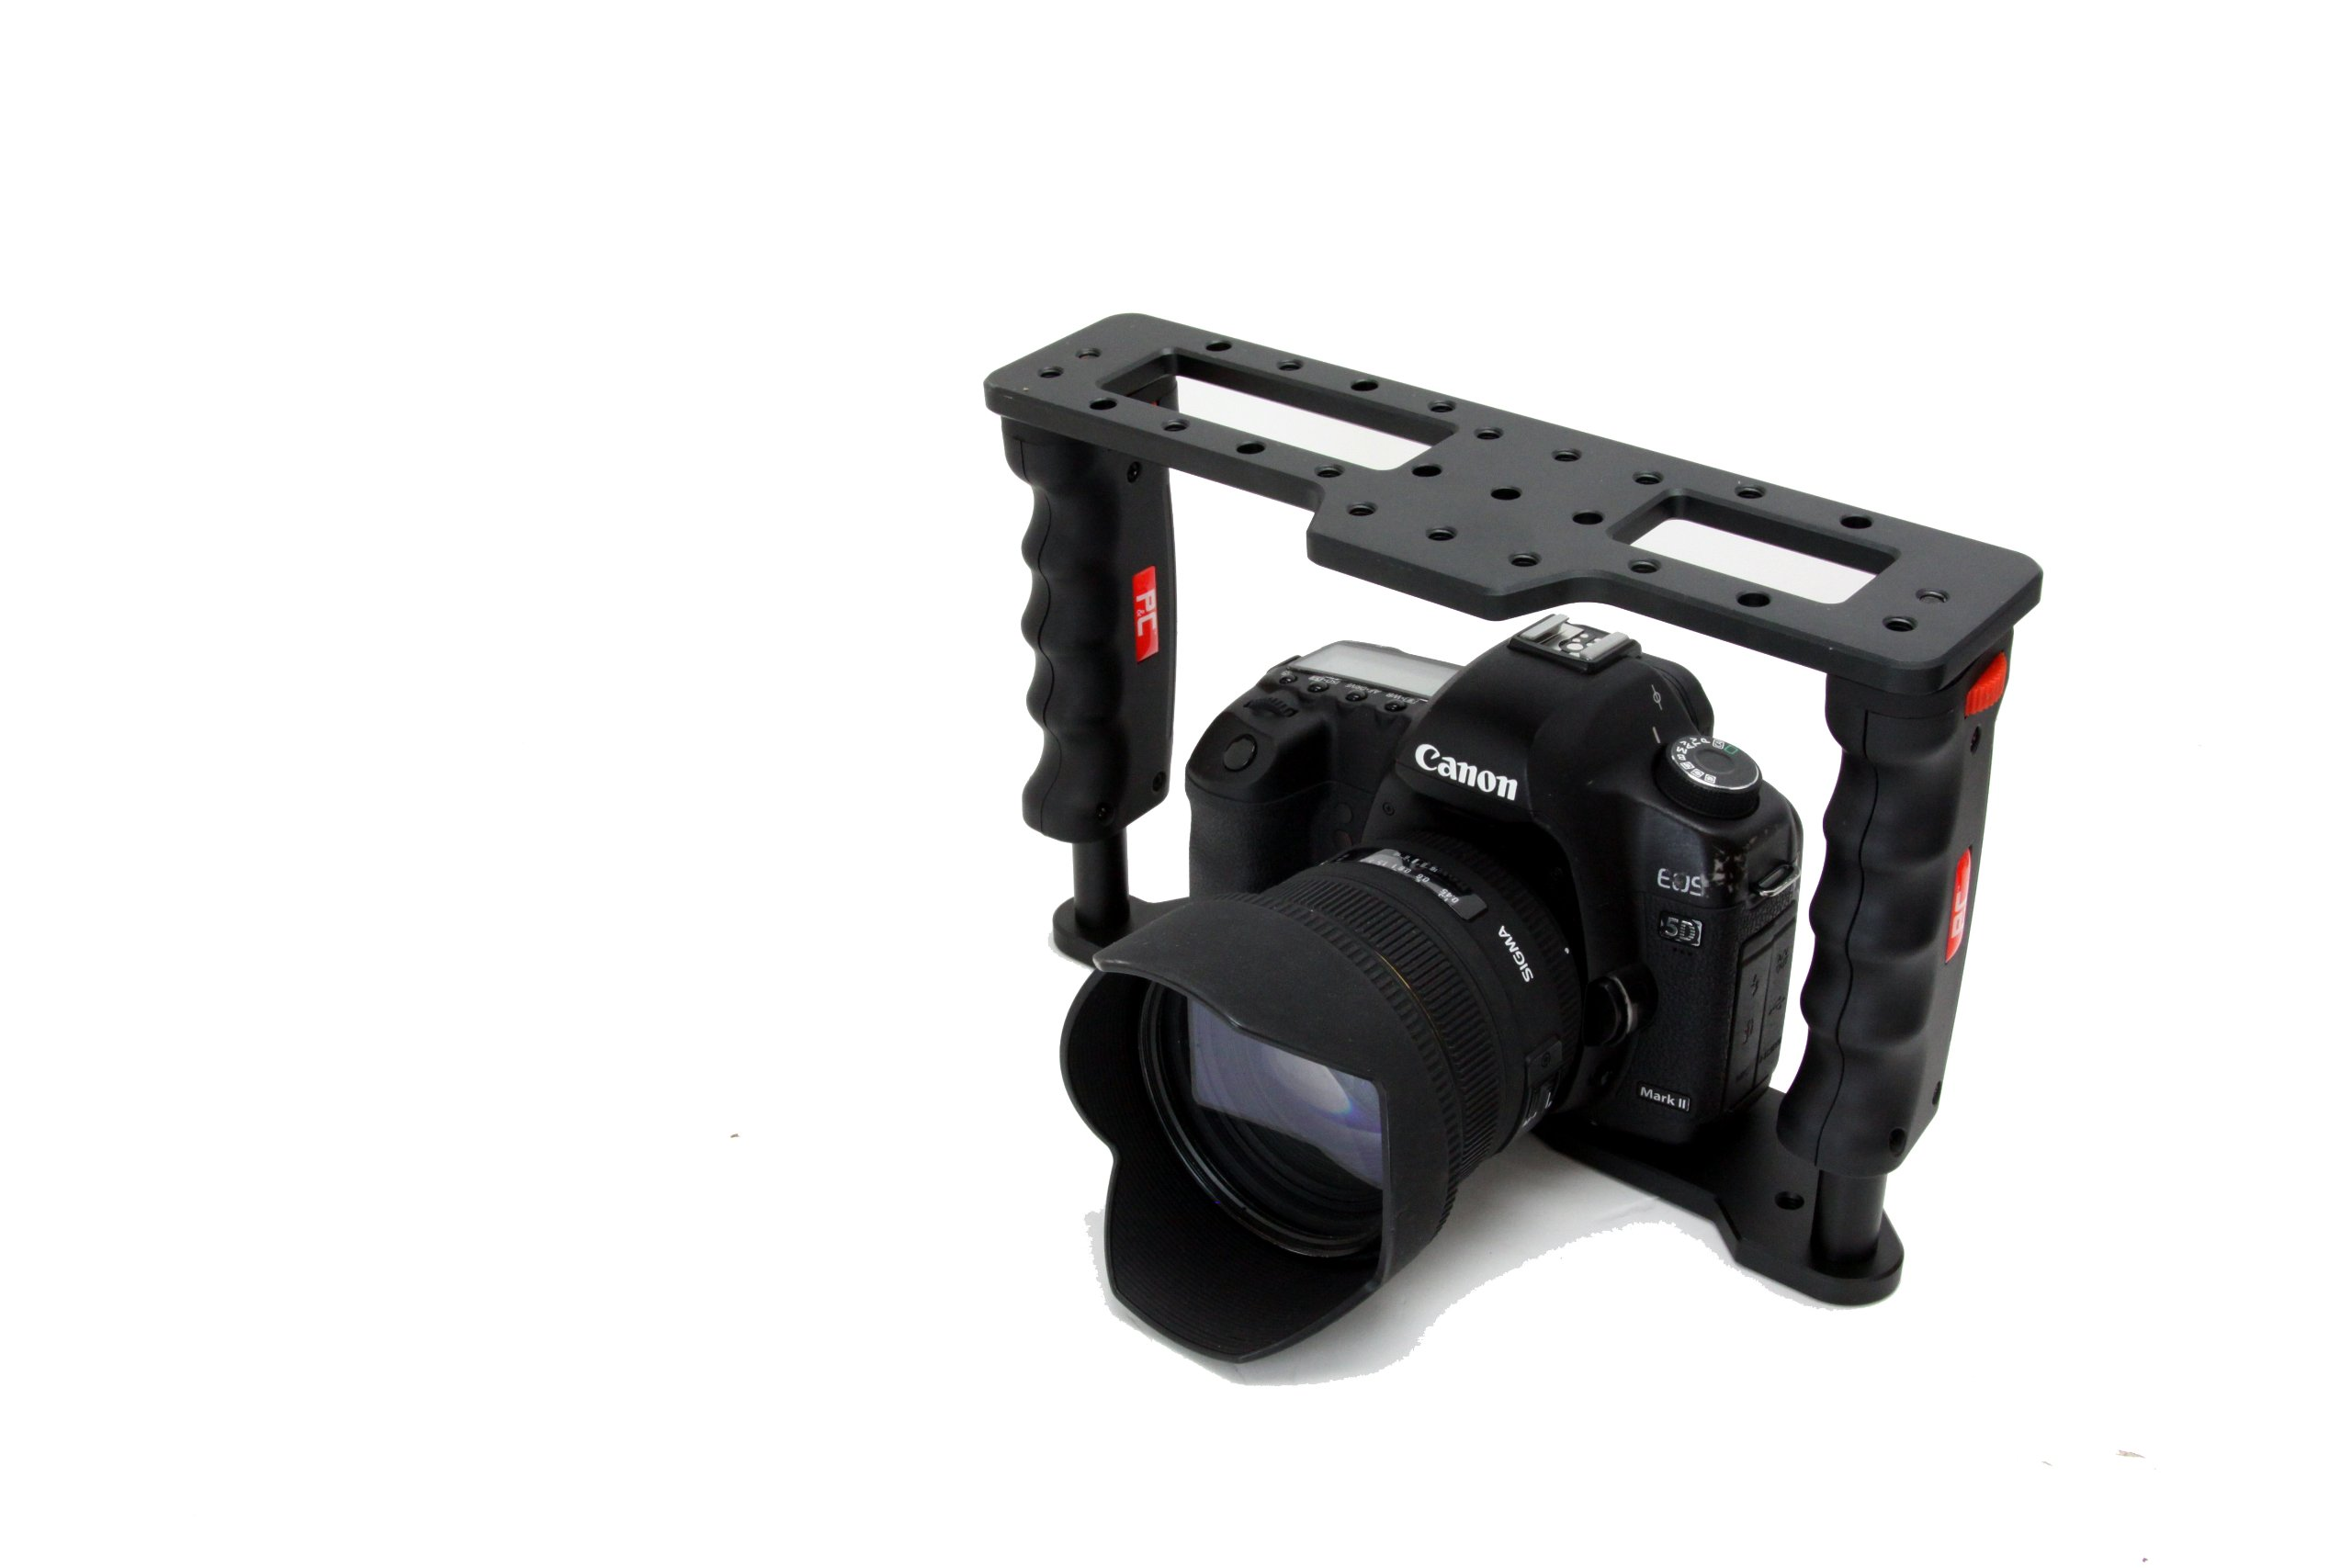 Photography & Cinema PNC GearBox Cage GB-1 for DSLR Cameras support full size Canon 5D Mark II